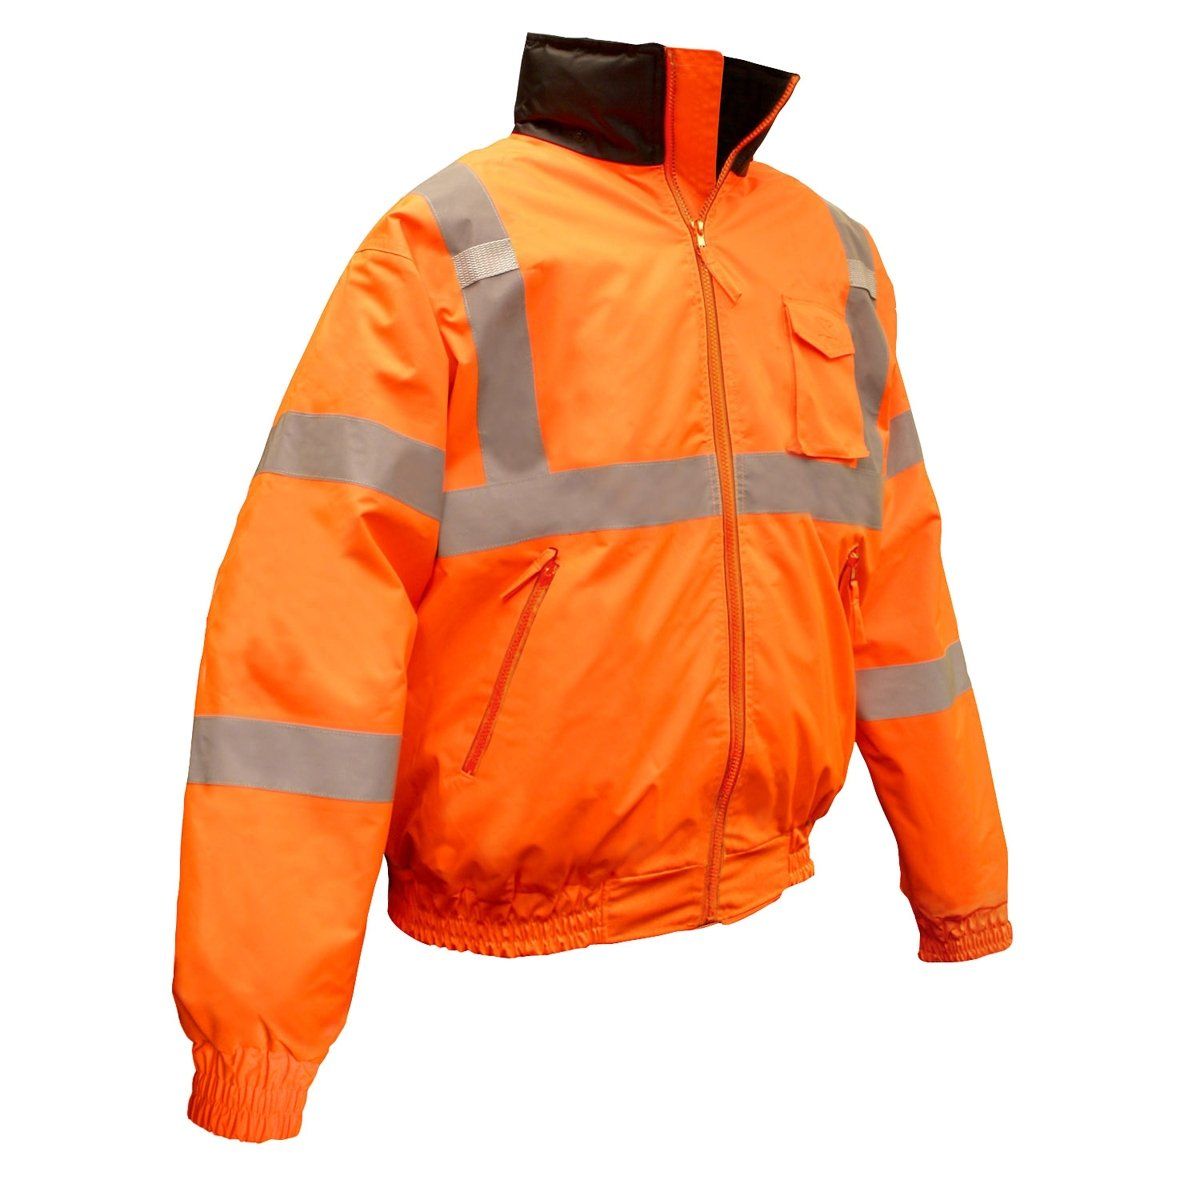 PREMIUM - 5-in-1 Cold Weather Parka - Class 3 - Hi-Viz Orange-3x